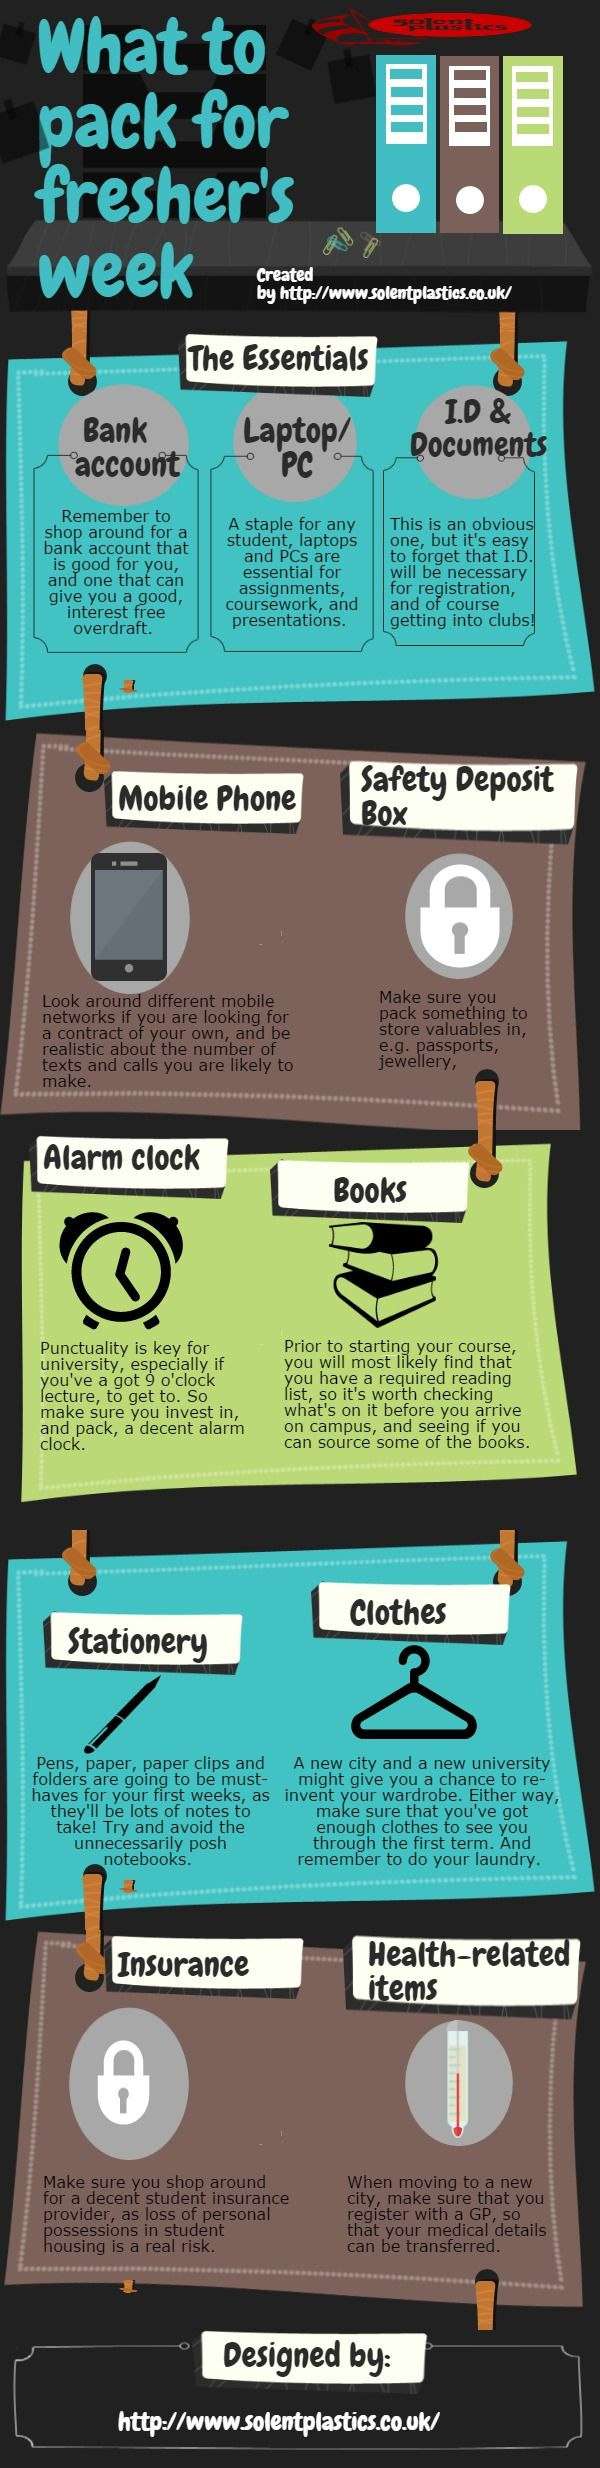 What to Pack for Fresher's Week #infographic #Education #University